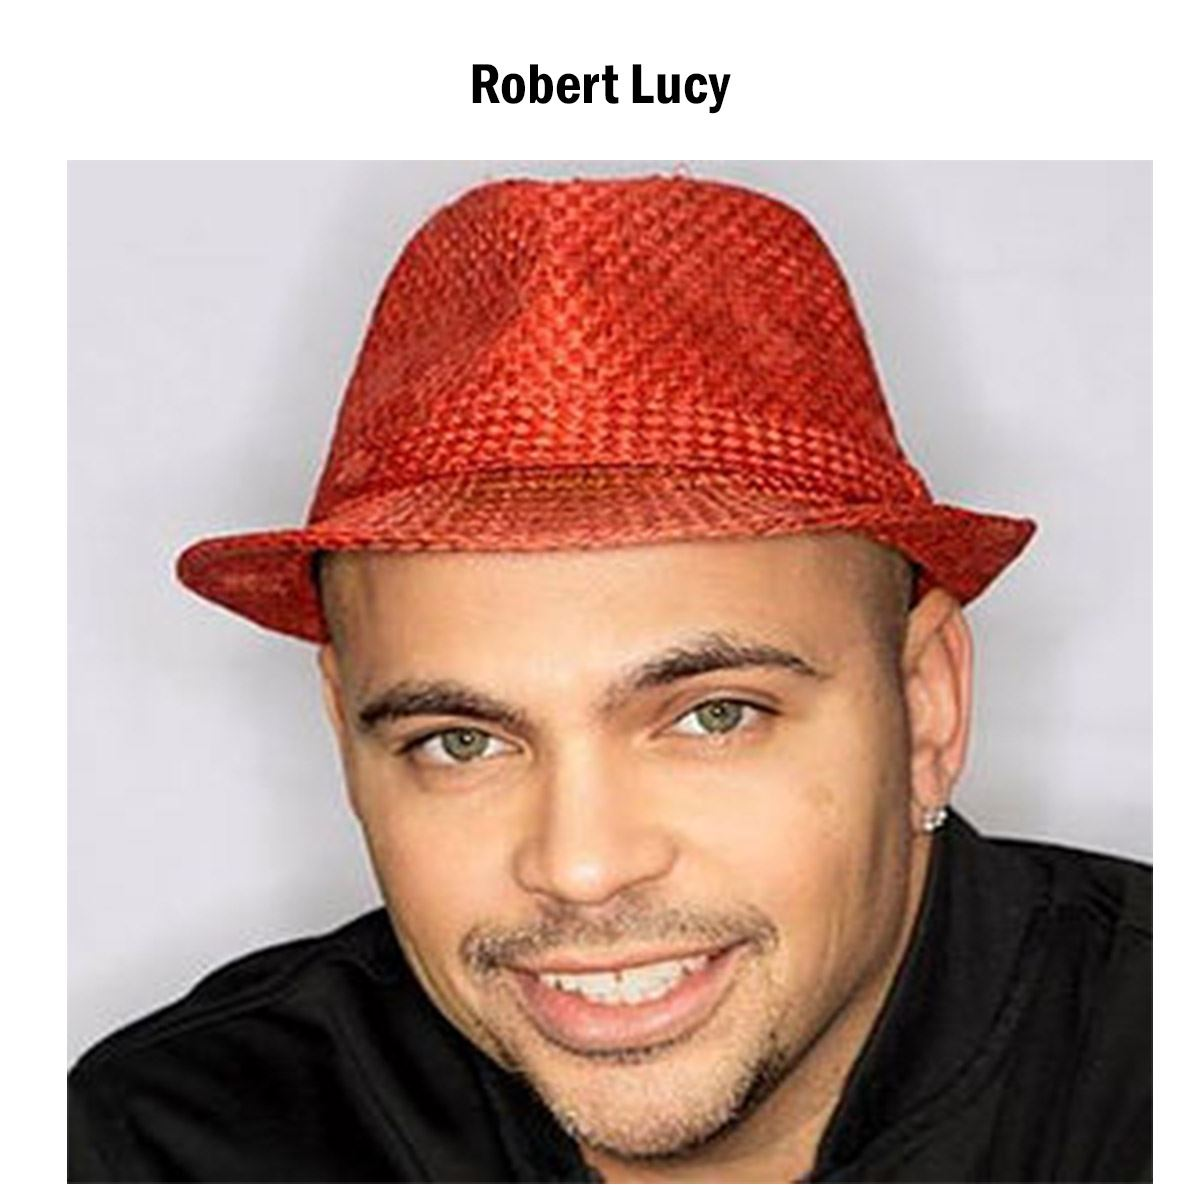 Robert Lucy website